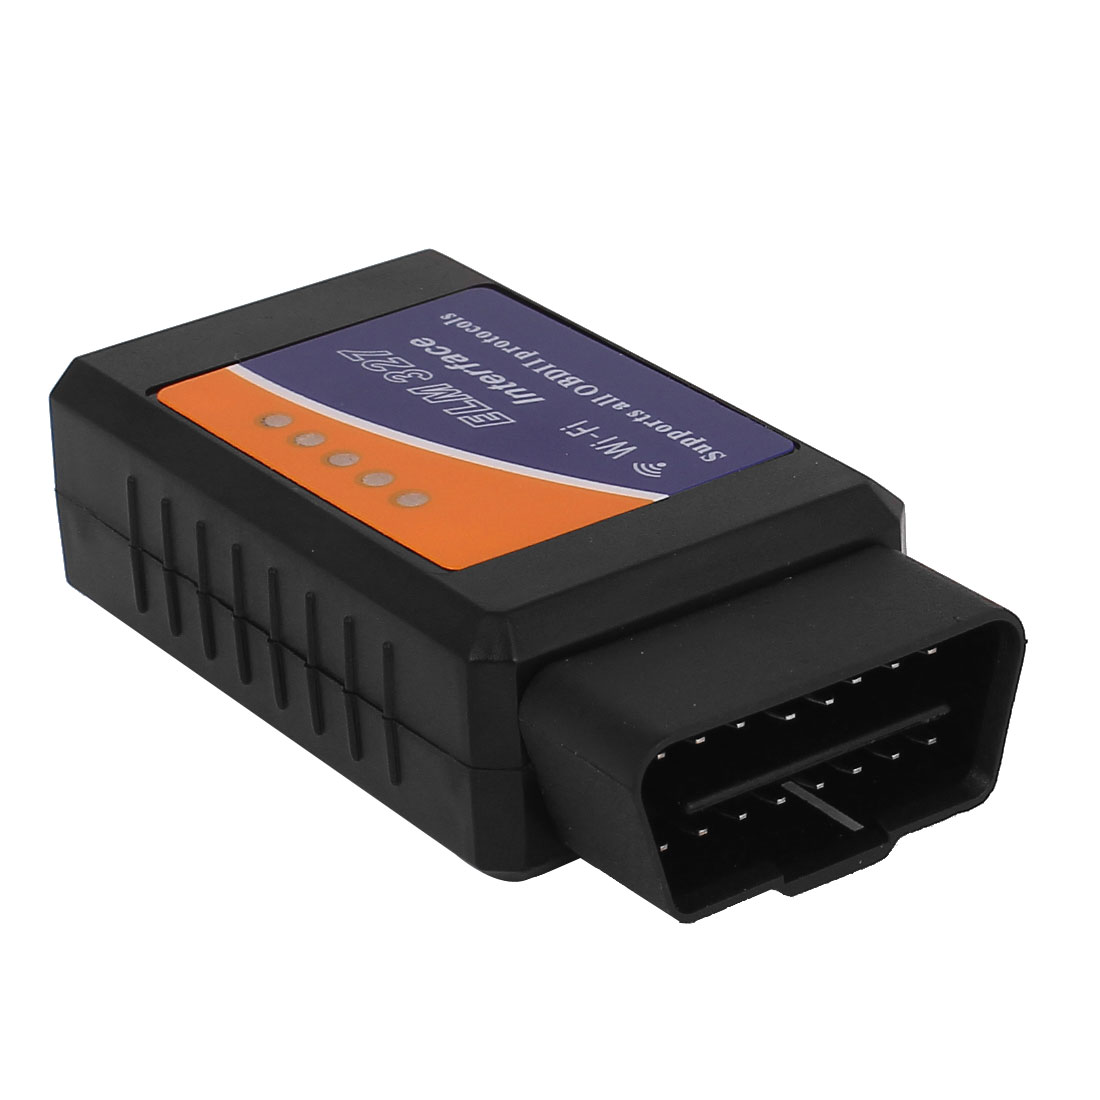 elm327 wifi obd2 obdii car diagnostic interface scanner tool for iphone ipad pc. Black Bedroom Furniture Sets. Home Design Ideas